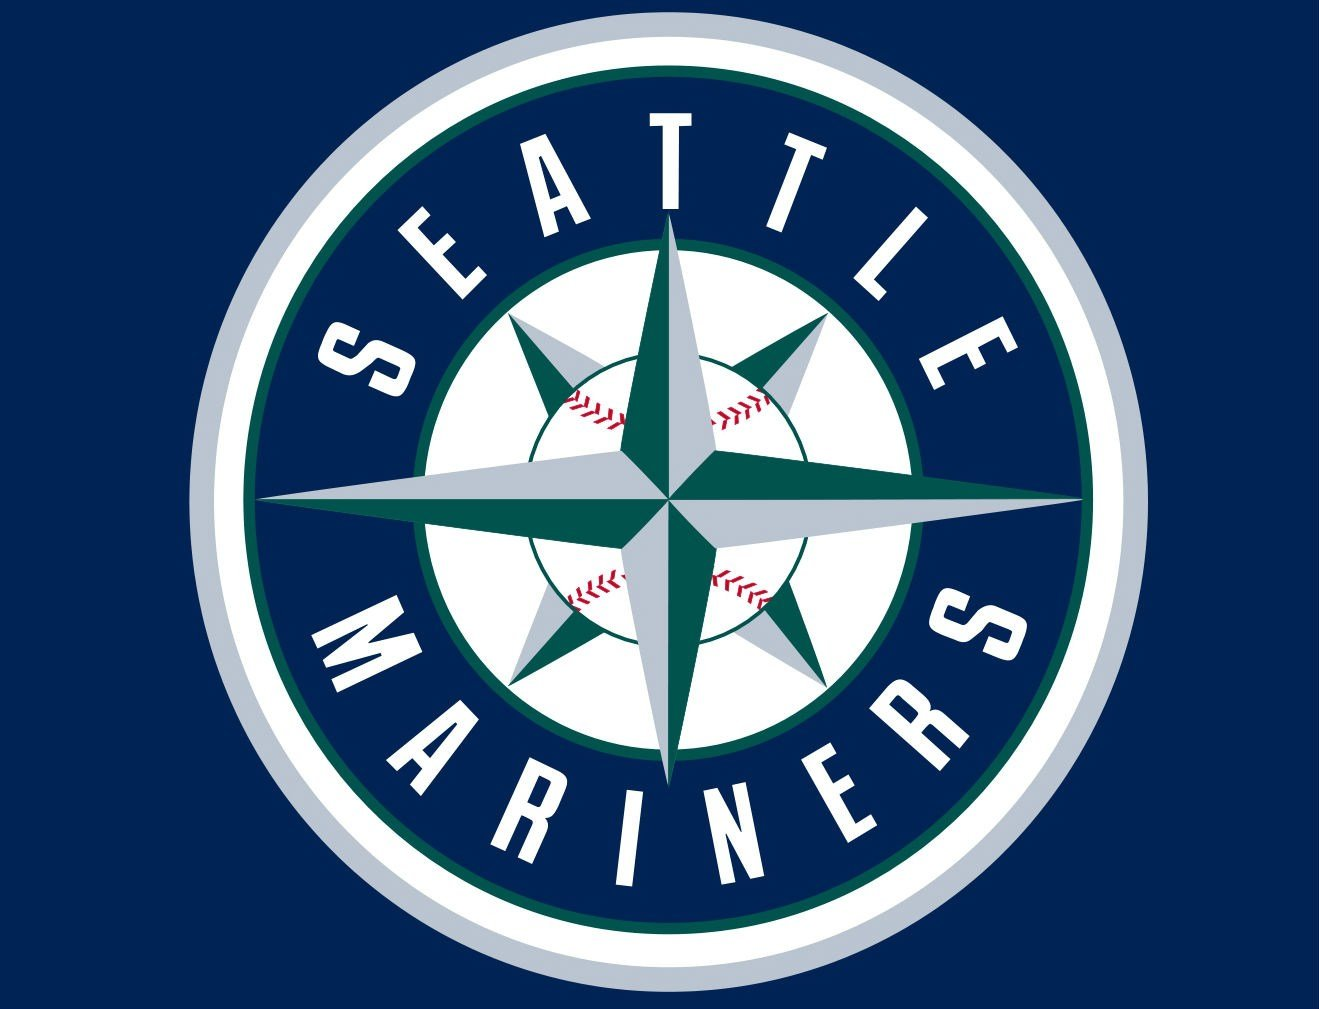 Mariners beat Twins 14-3.